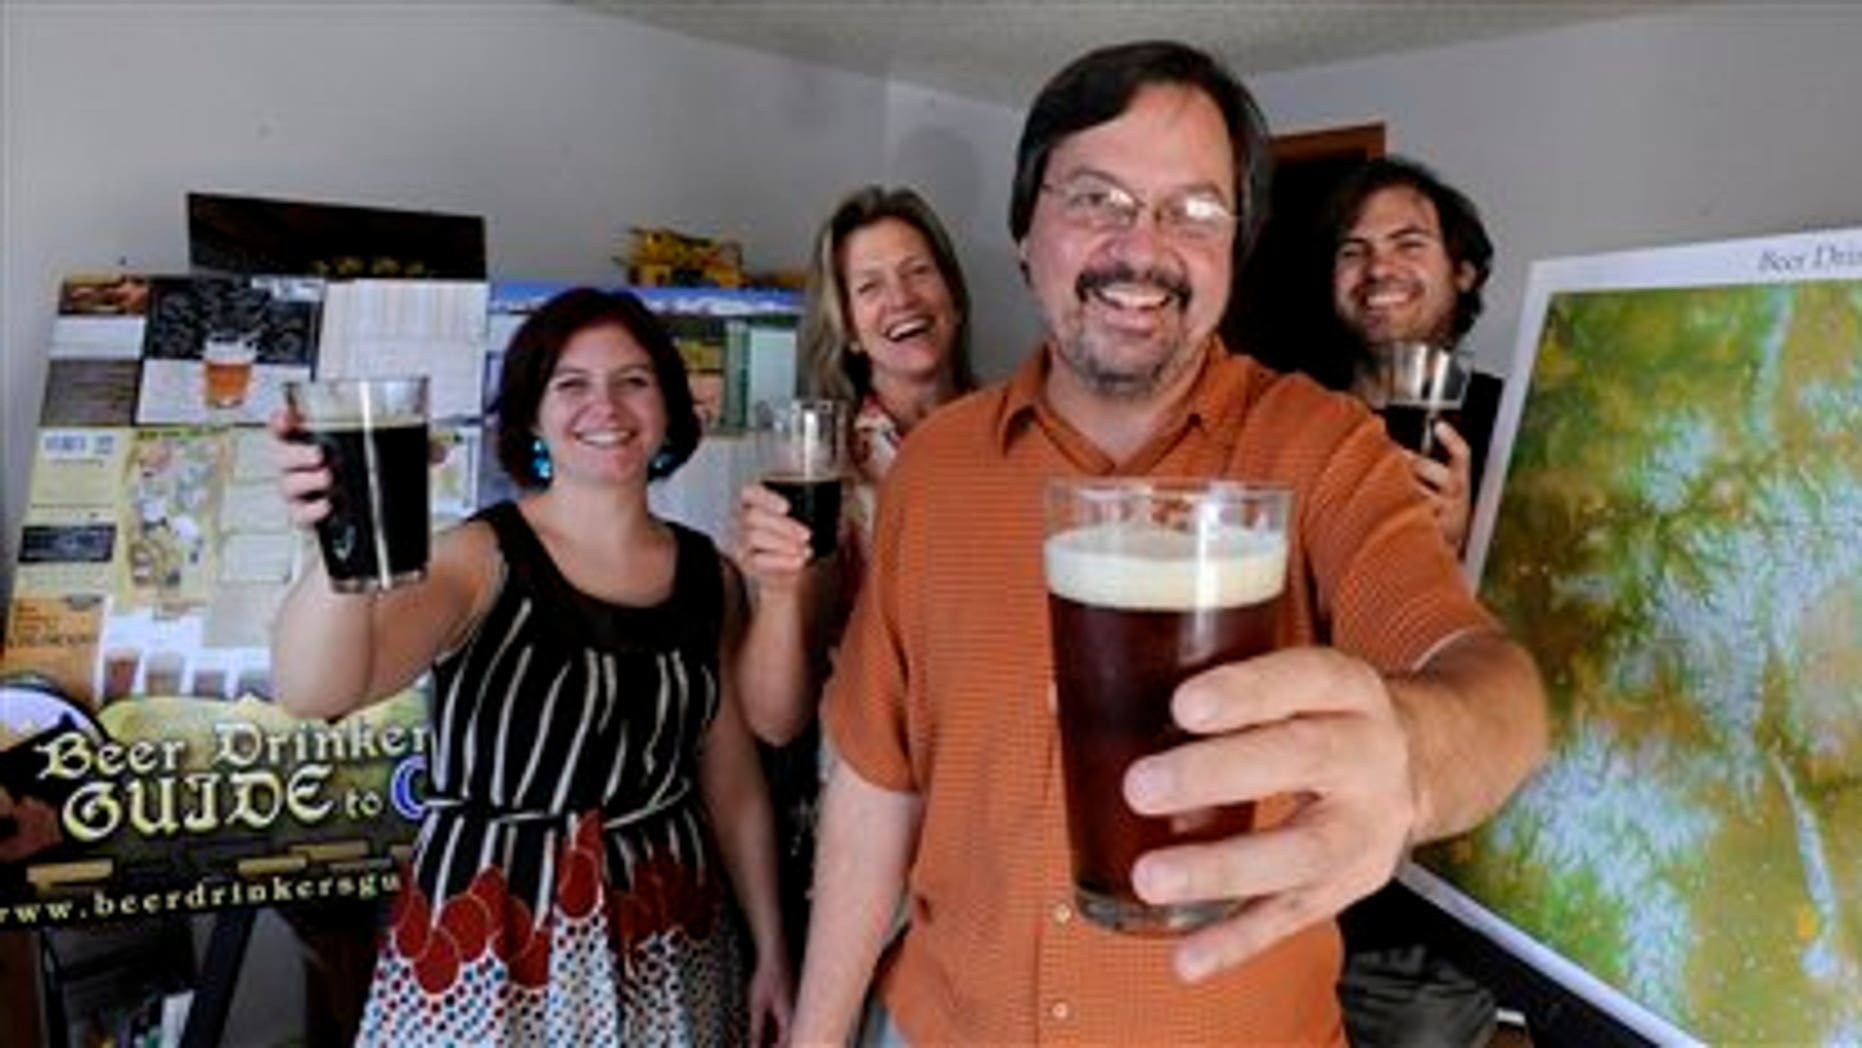 Aug. 8:  Mike Laur, foreground, raises a beer along with, left to right, Zenia Brink, Carol White and Rick Mazzola, who helped him create the fourth edition of the Beer Drinker's Guide to Colorado map in Colorado Springs, Col.  The latest edition of the guide, put together by Laur and his 3.5 employees (one works part time), lists 126 breweries, 20 more than when he launched the publication in 2008.